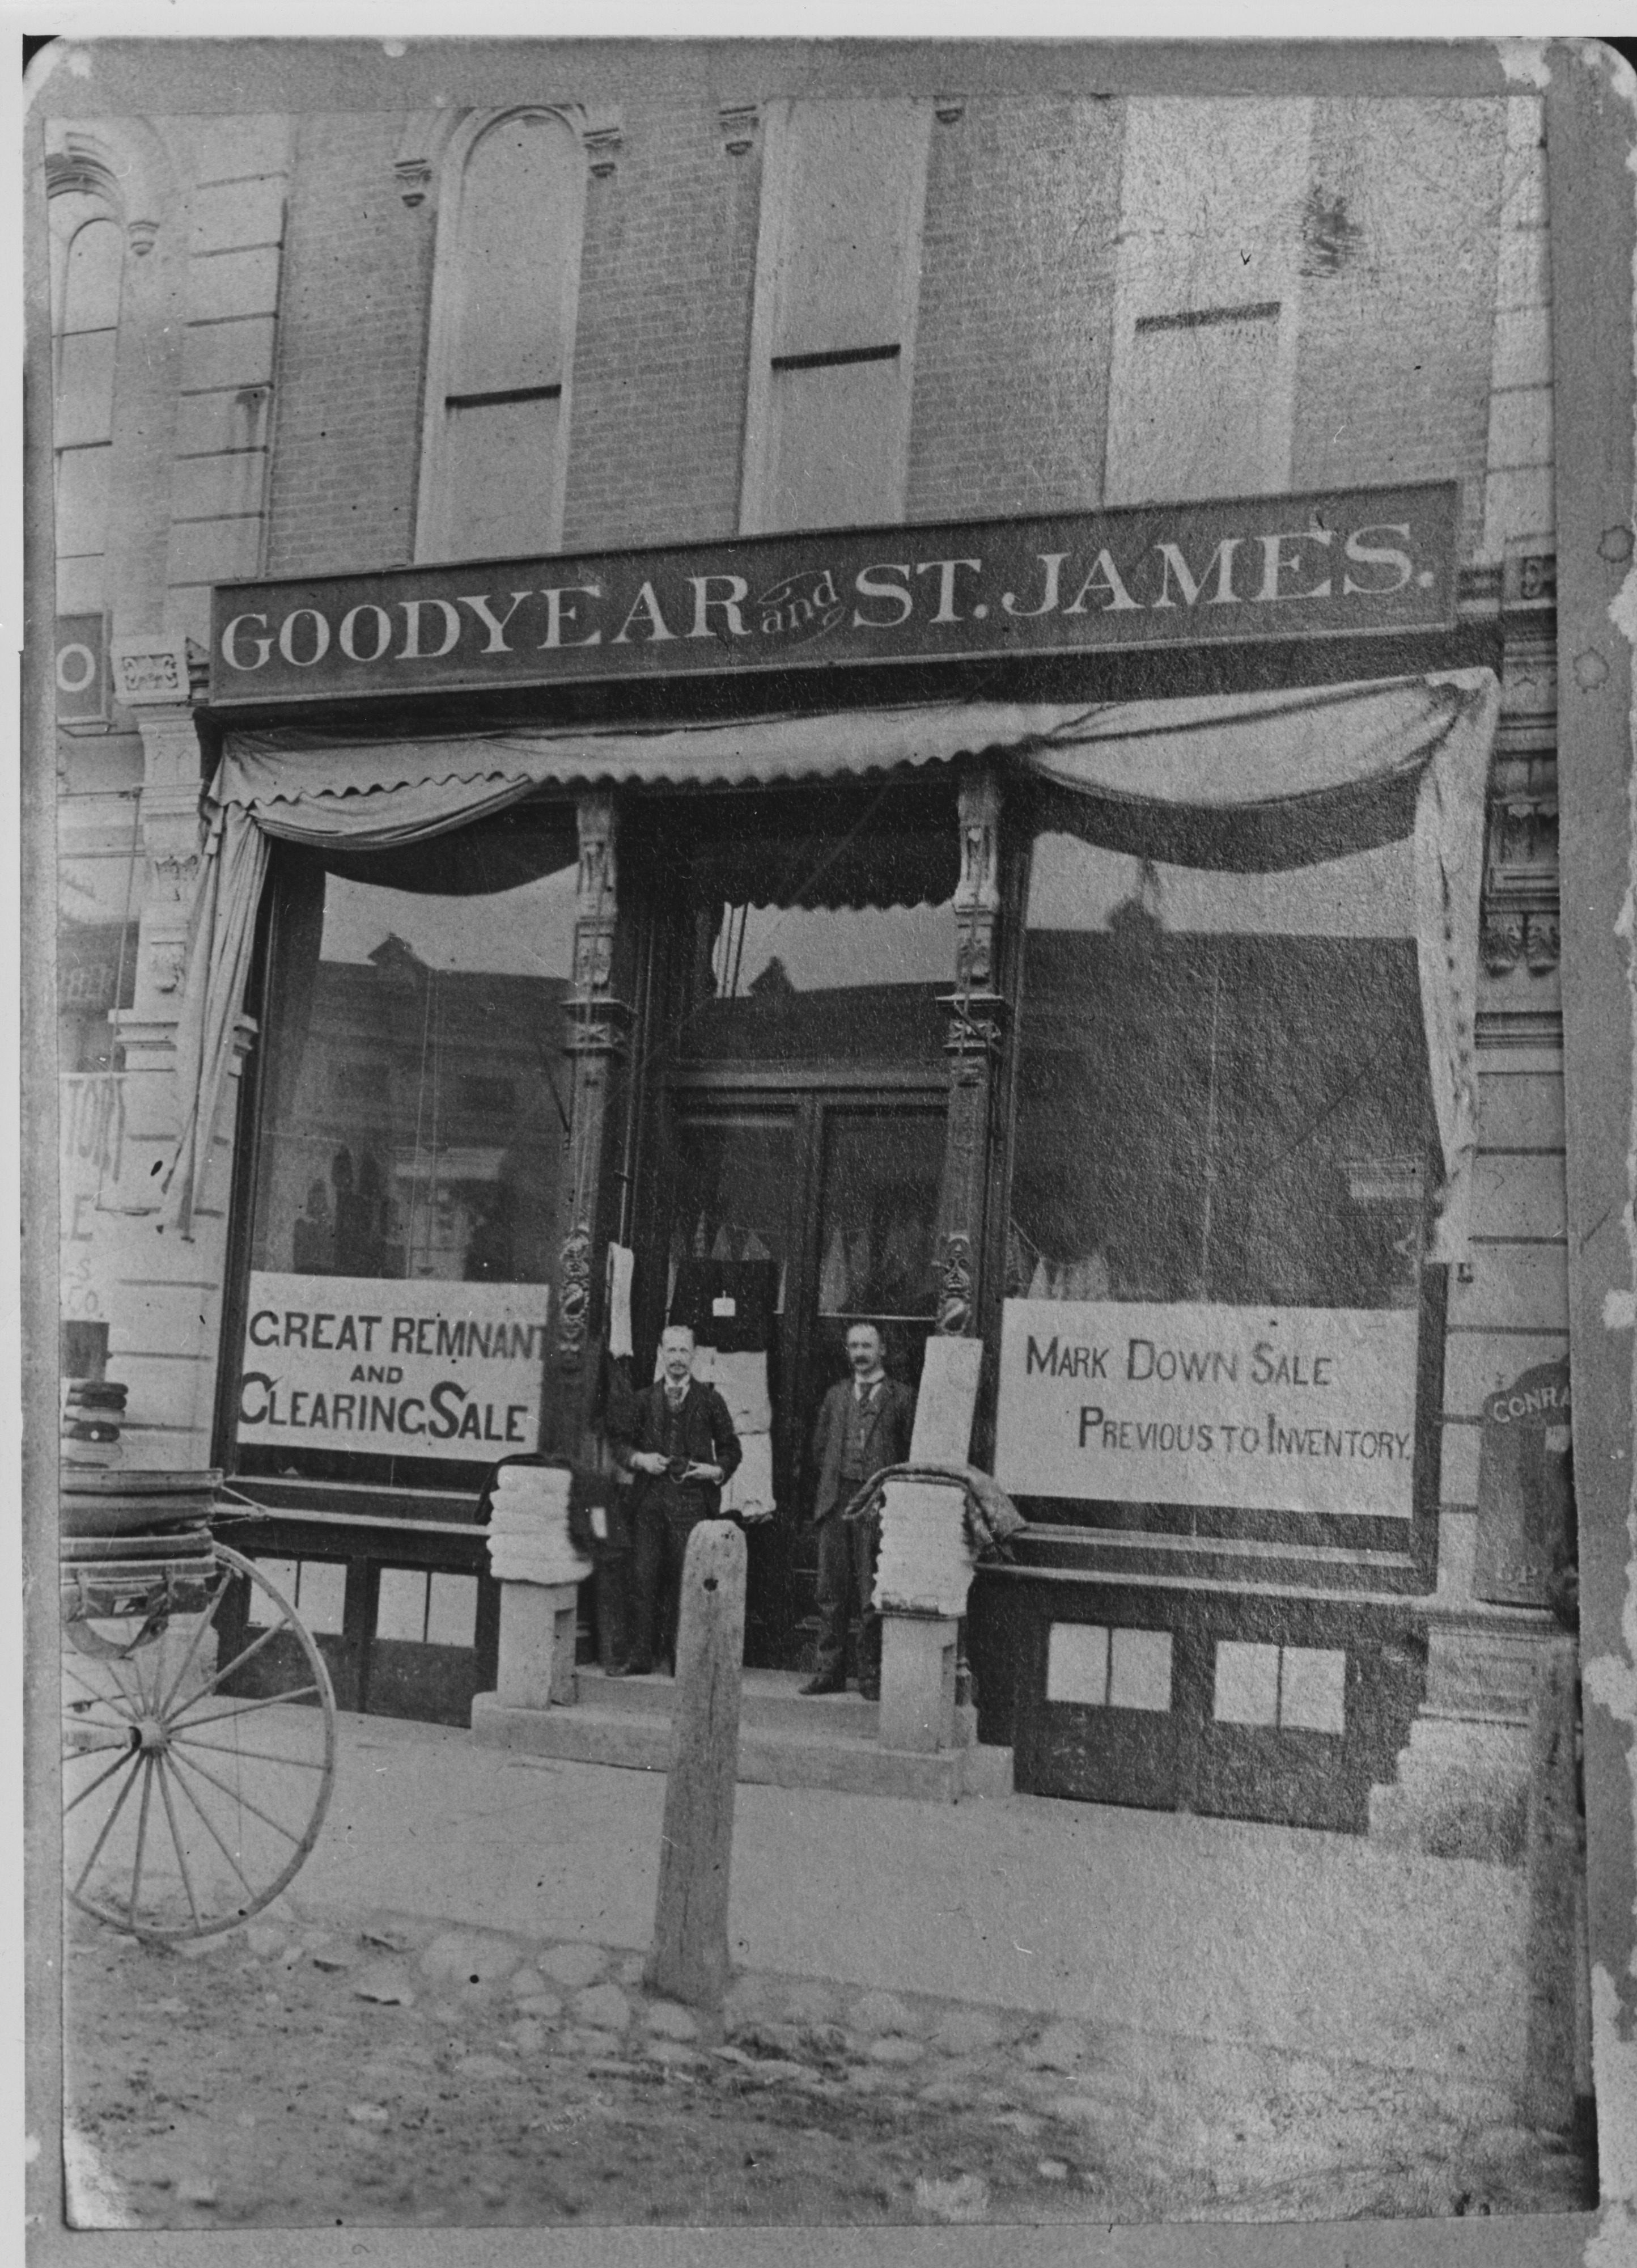 Photo copy of Goodyear & St. James, original building, undated image